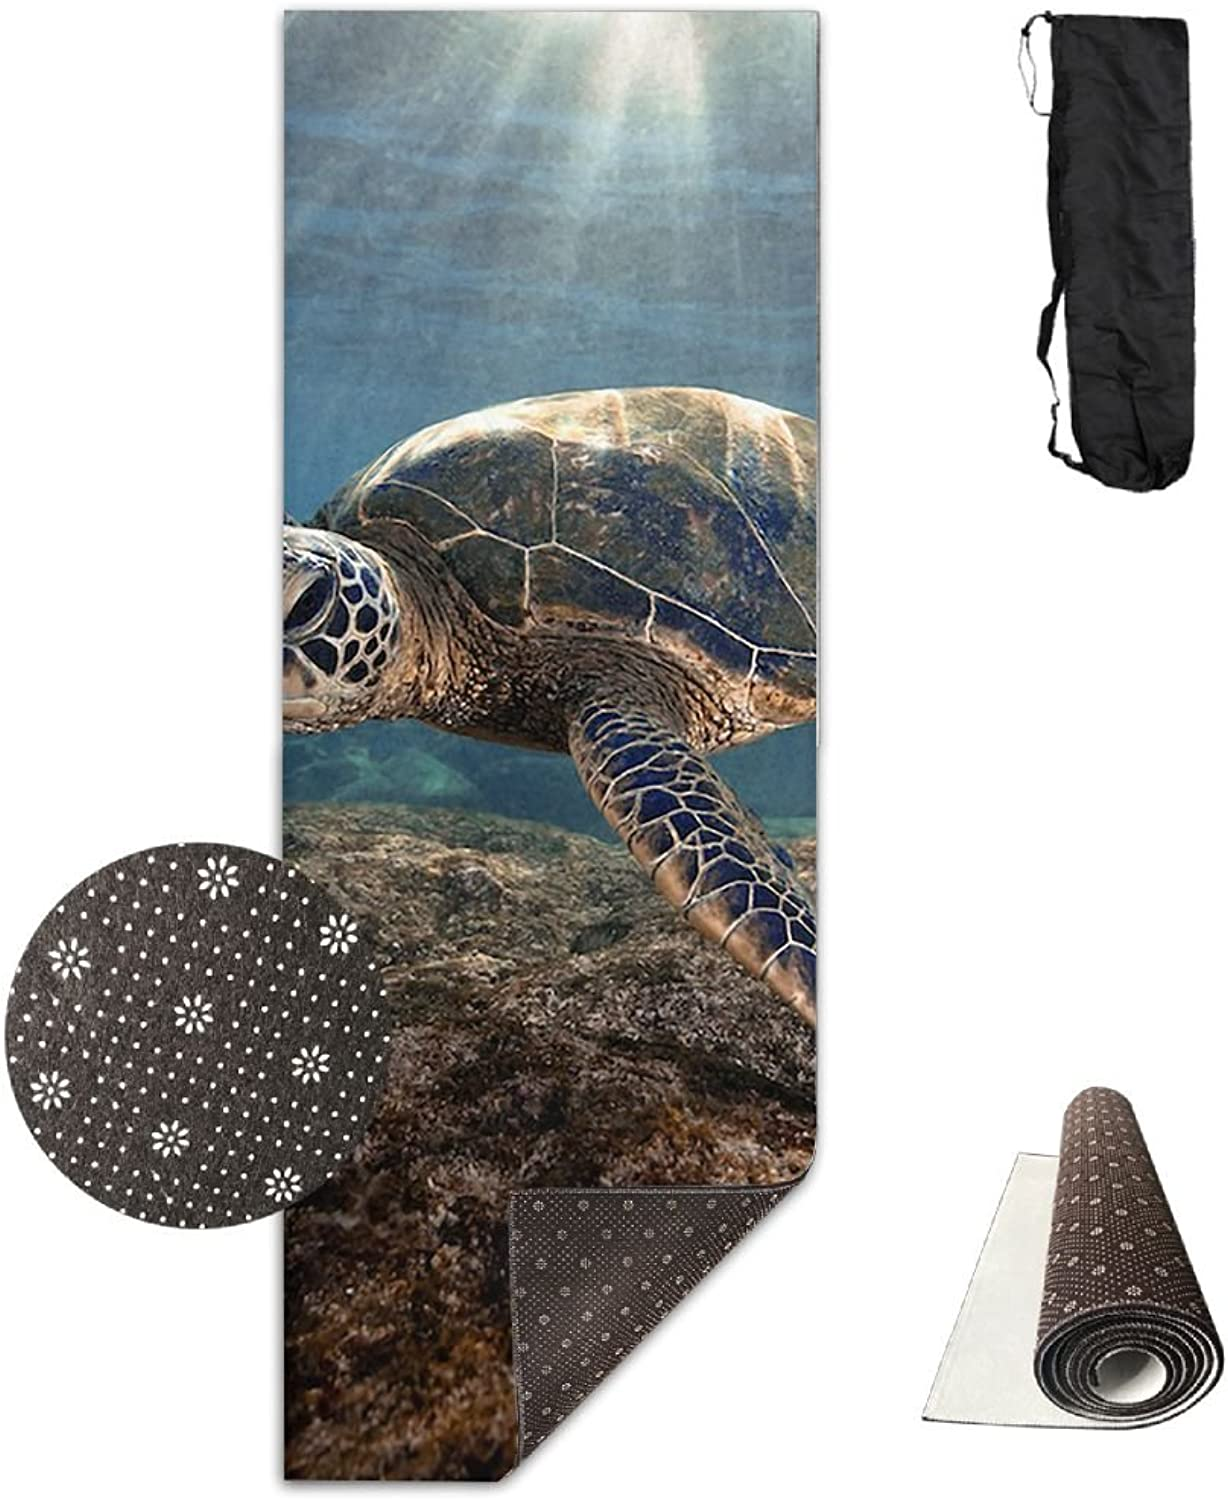 Gym Mat Sun Sea Turtle Fitness High Density AntiTear Exercise Yoga Mat With Carrying Bag For Exercise,Pilates